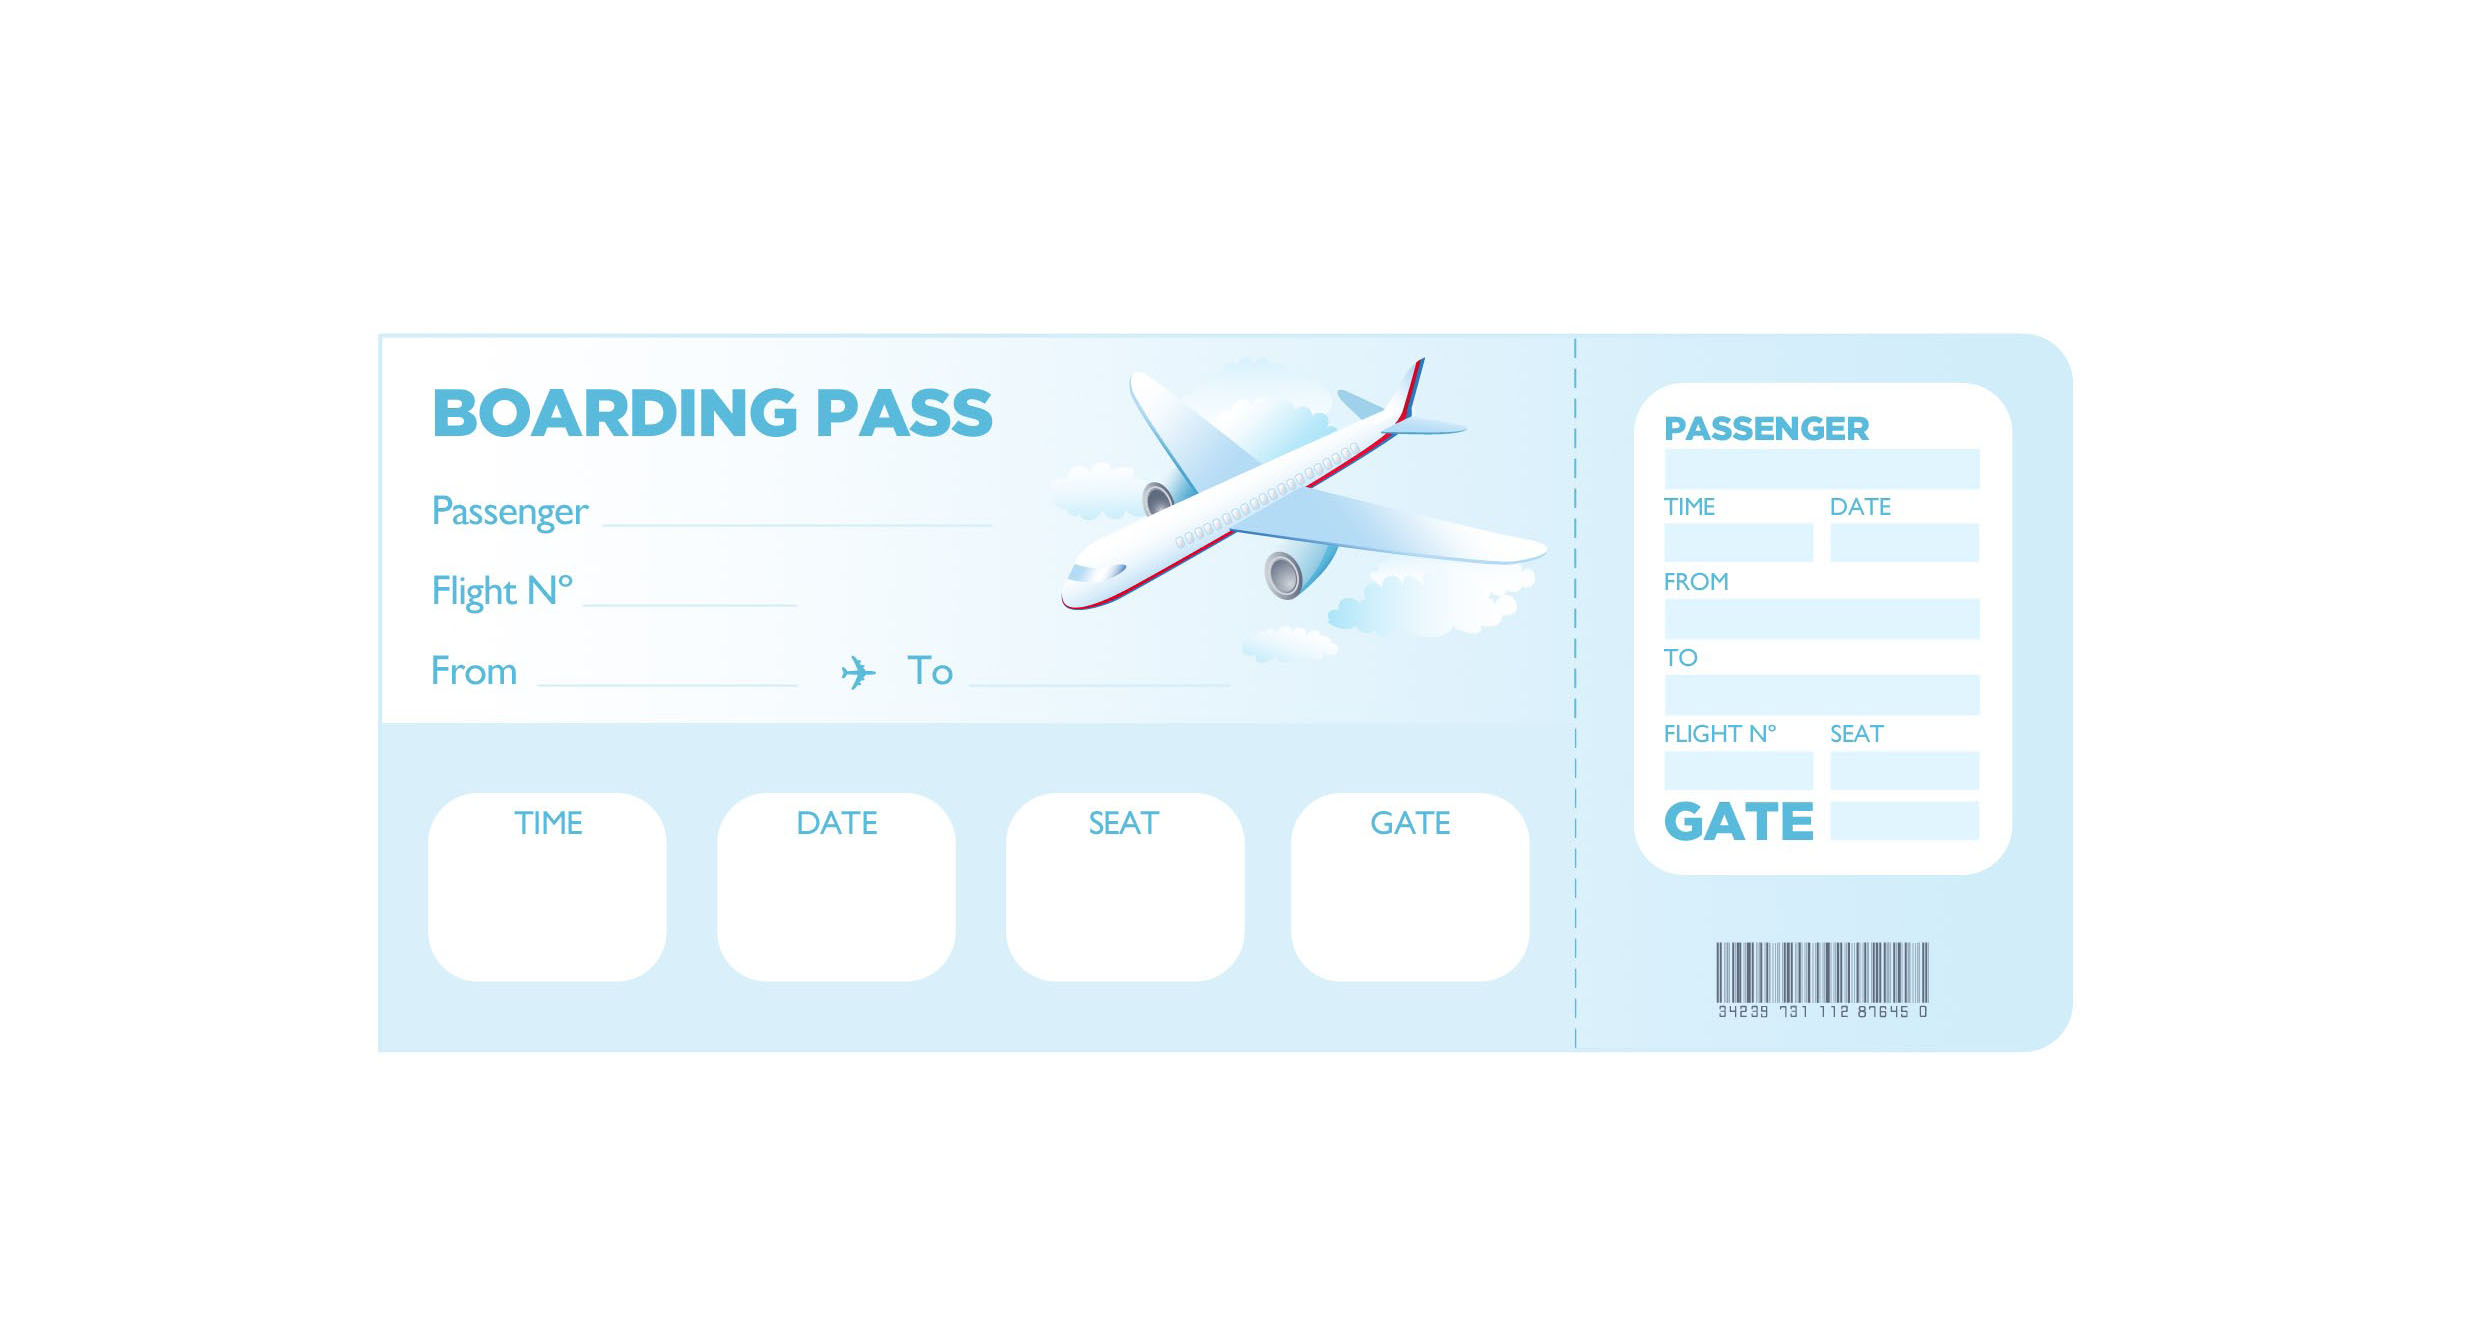 found some great free templates for the passport and boarding pass tsVl5vVo